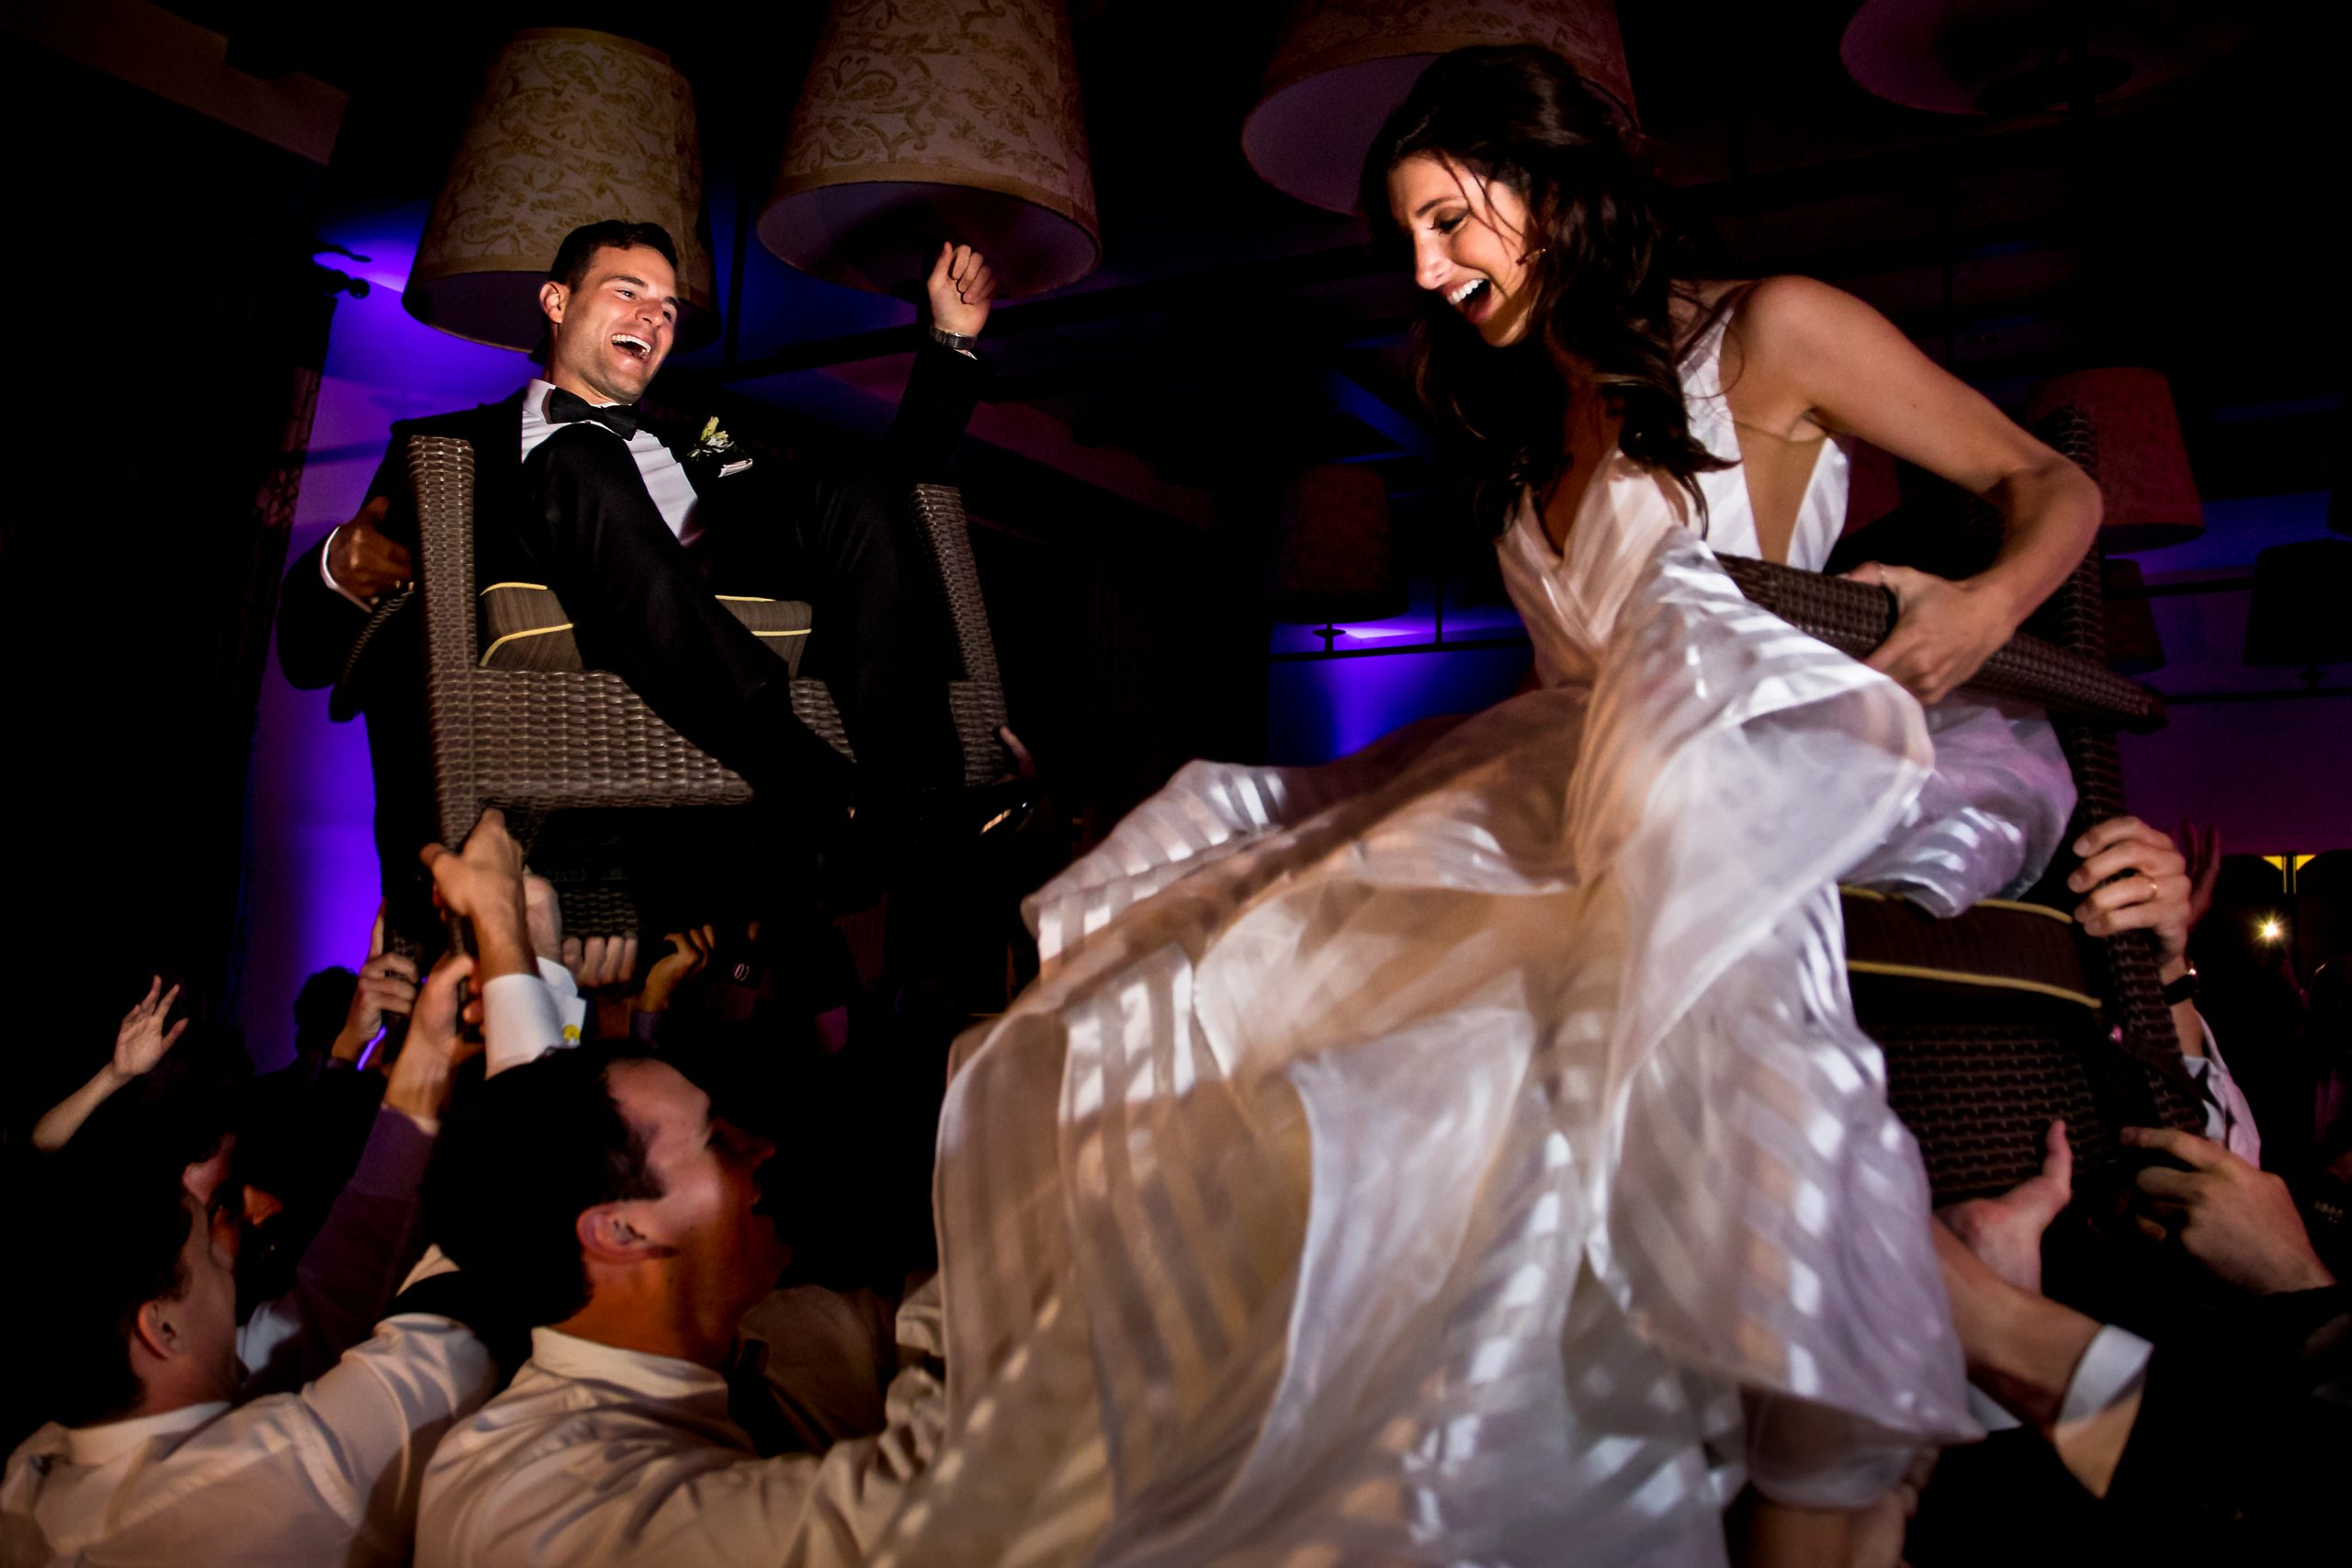 Bride and groom are seen both crowd-surfing in chairs